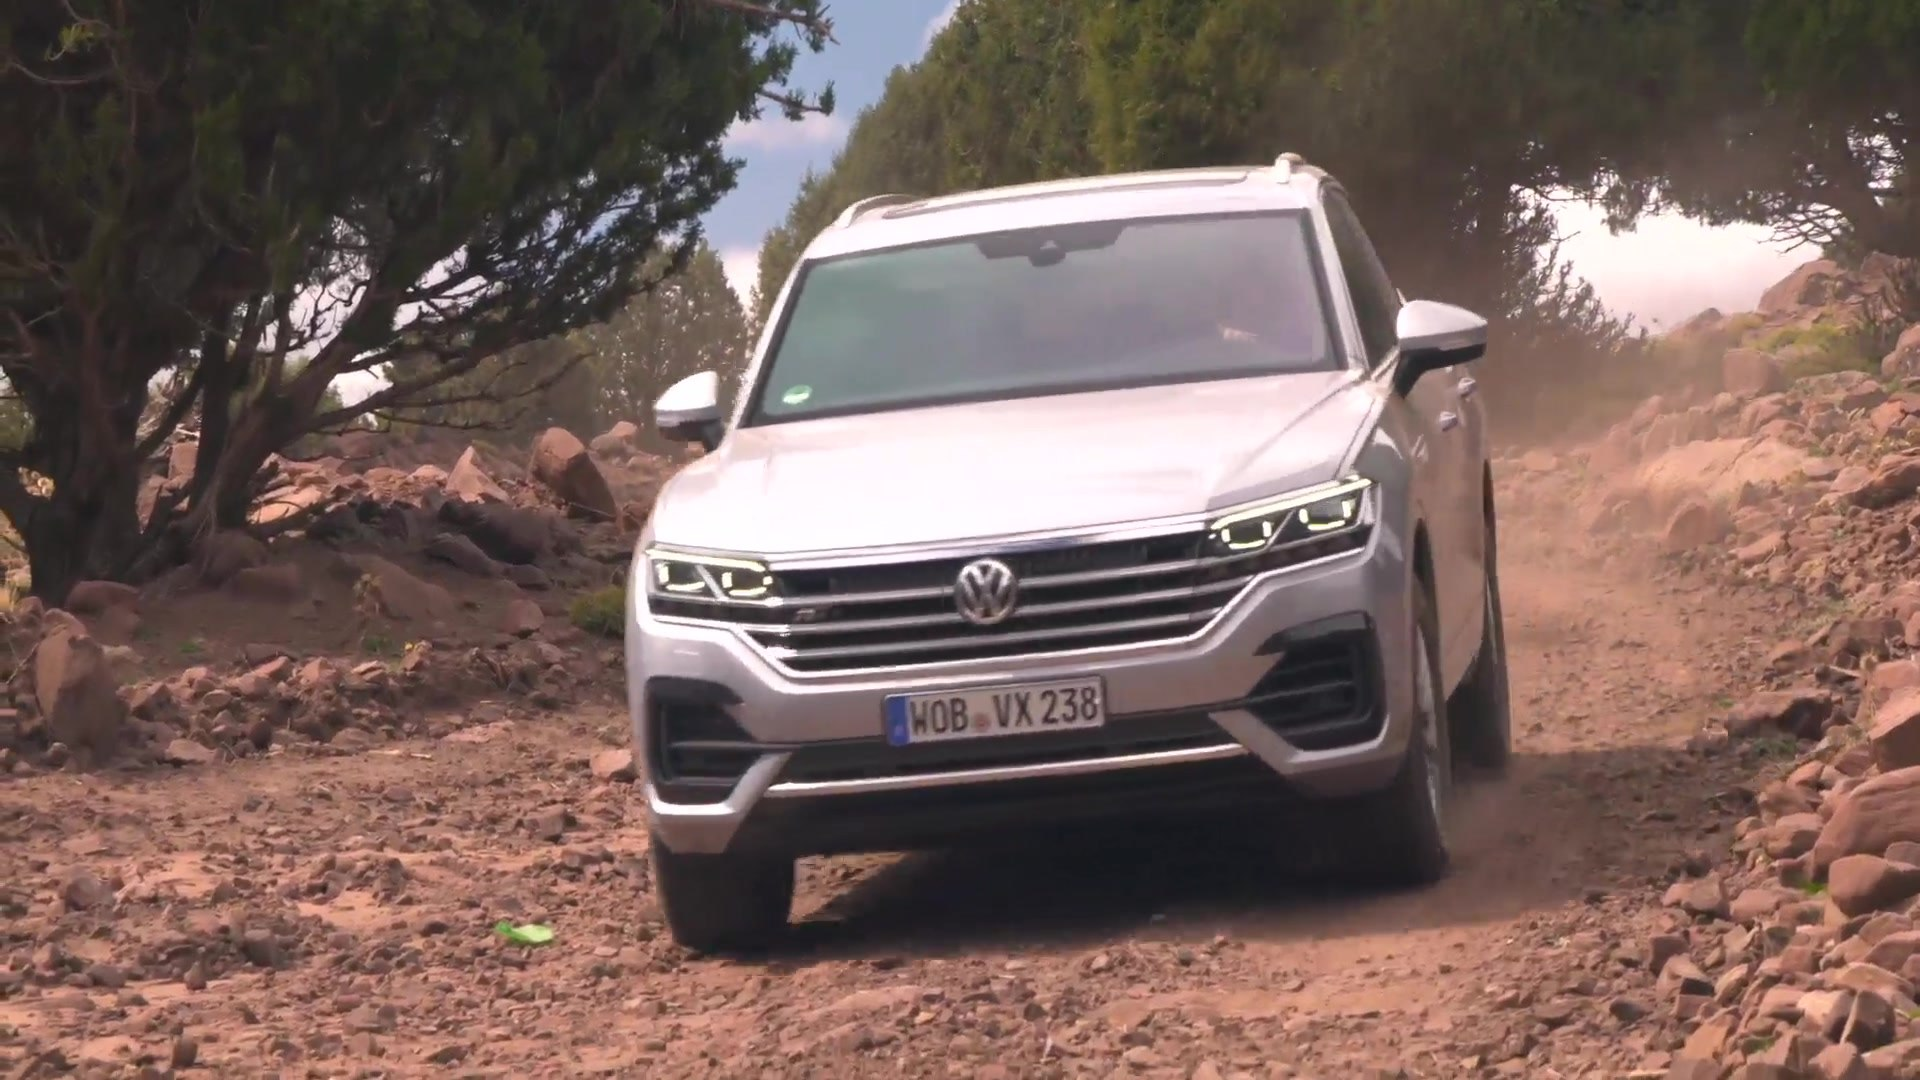 Volkswagen Touareg In Marocco Off Road Video Dailymotion